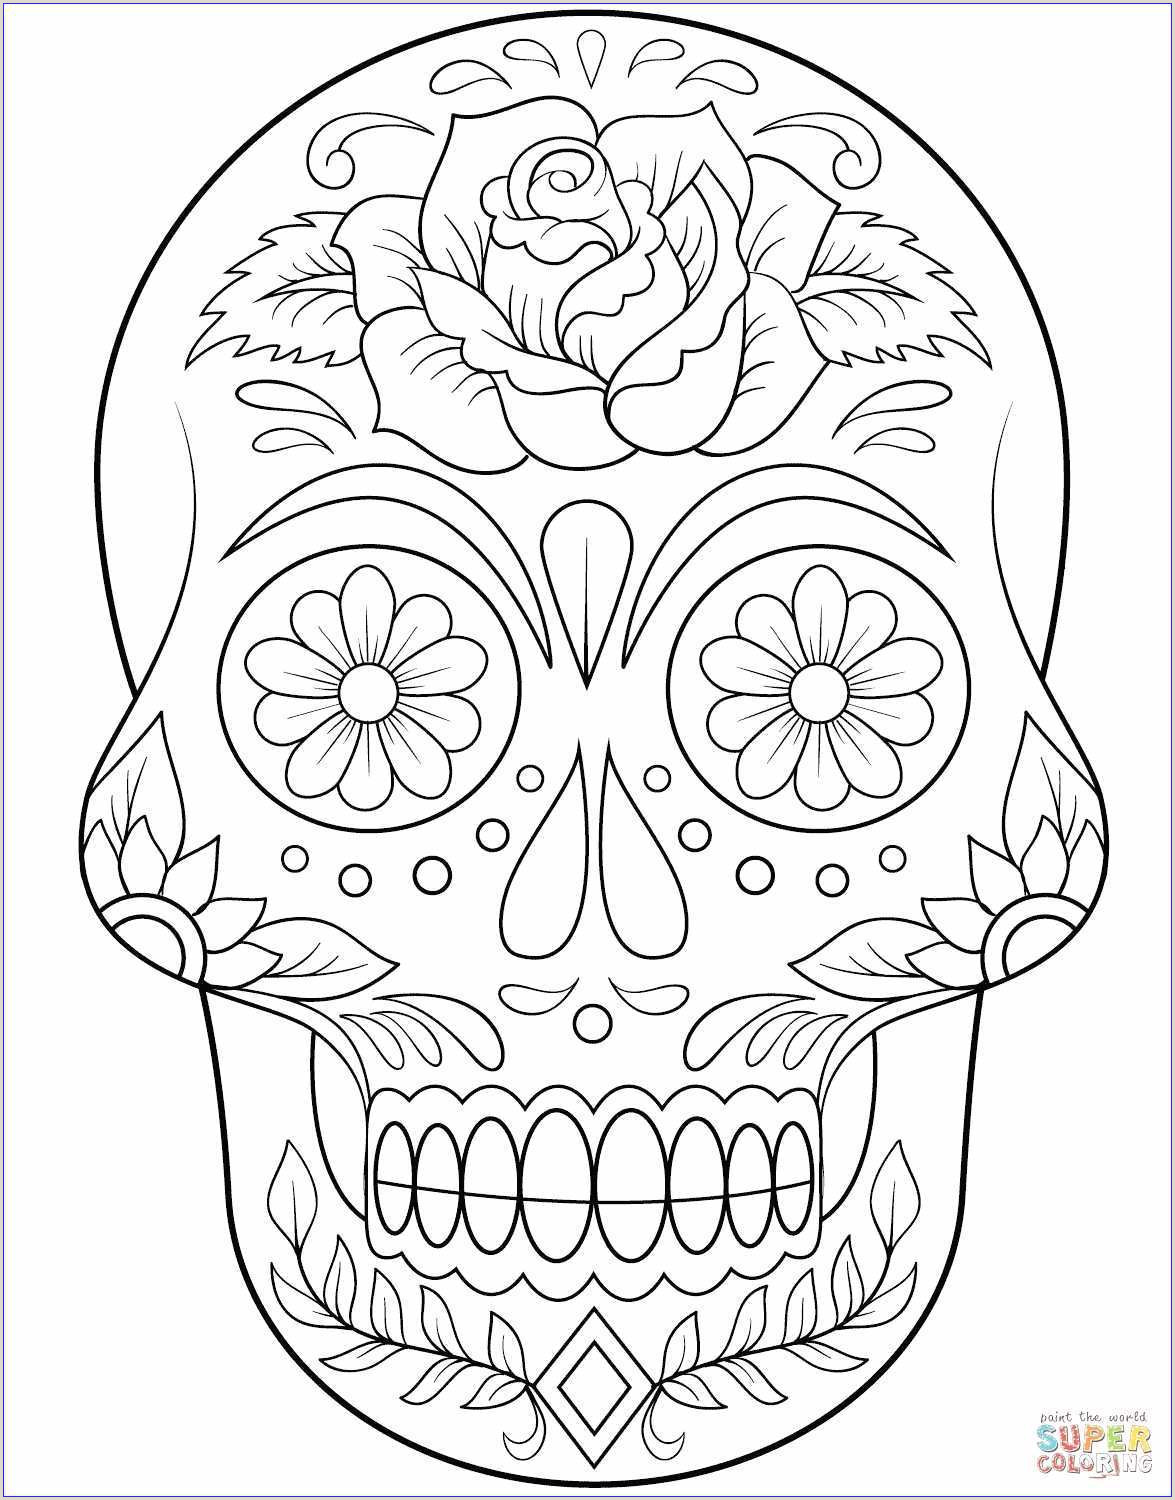 Skull and Crossbones Template Of Skull Tree Coloring Pages Sabadaphnecottage